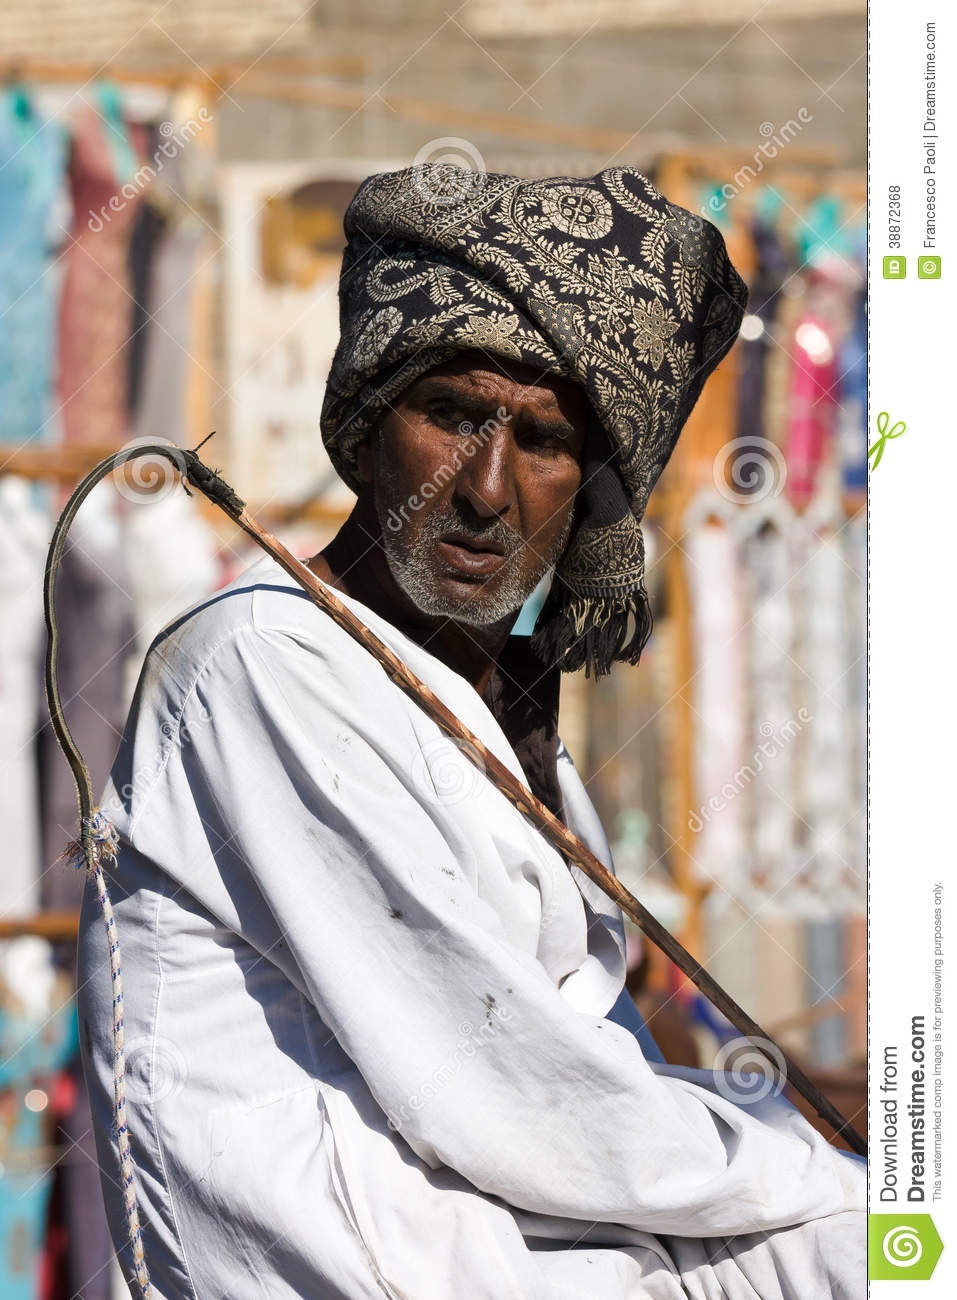 egyptian-man-turban-cairo-egypt-38872368